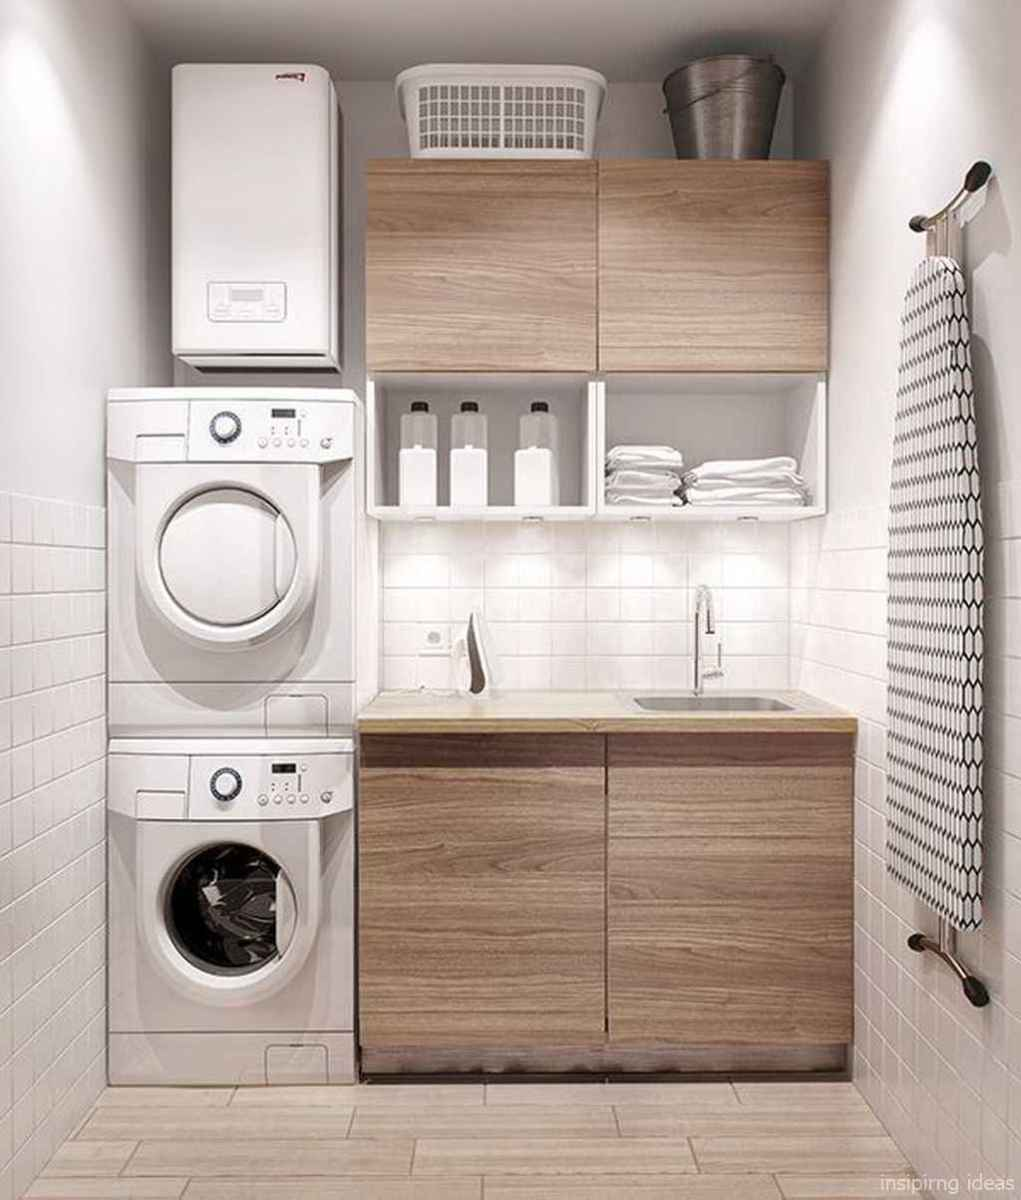 90 Awesome Laundry Room Design and Organization Ideas 53